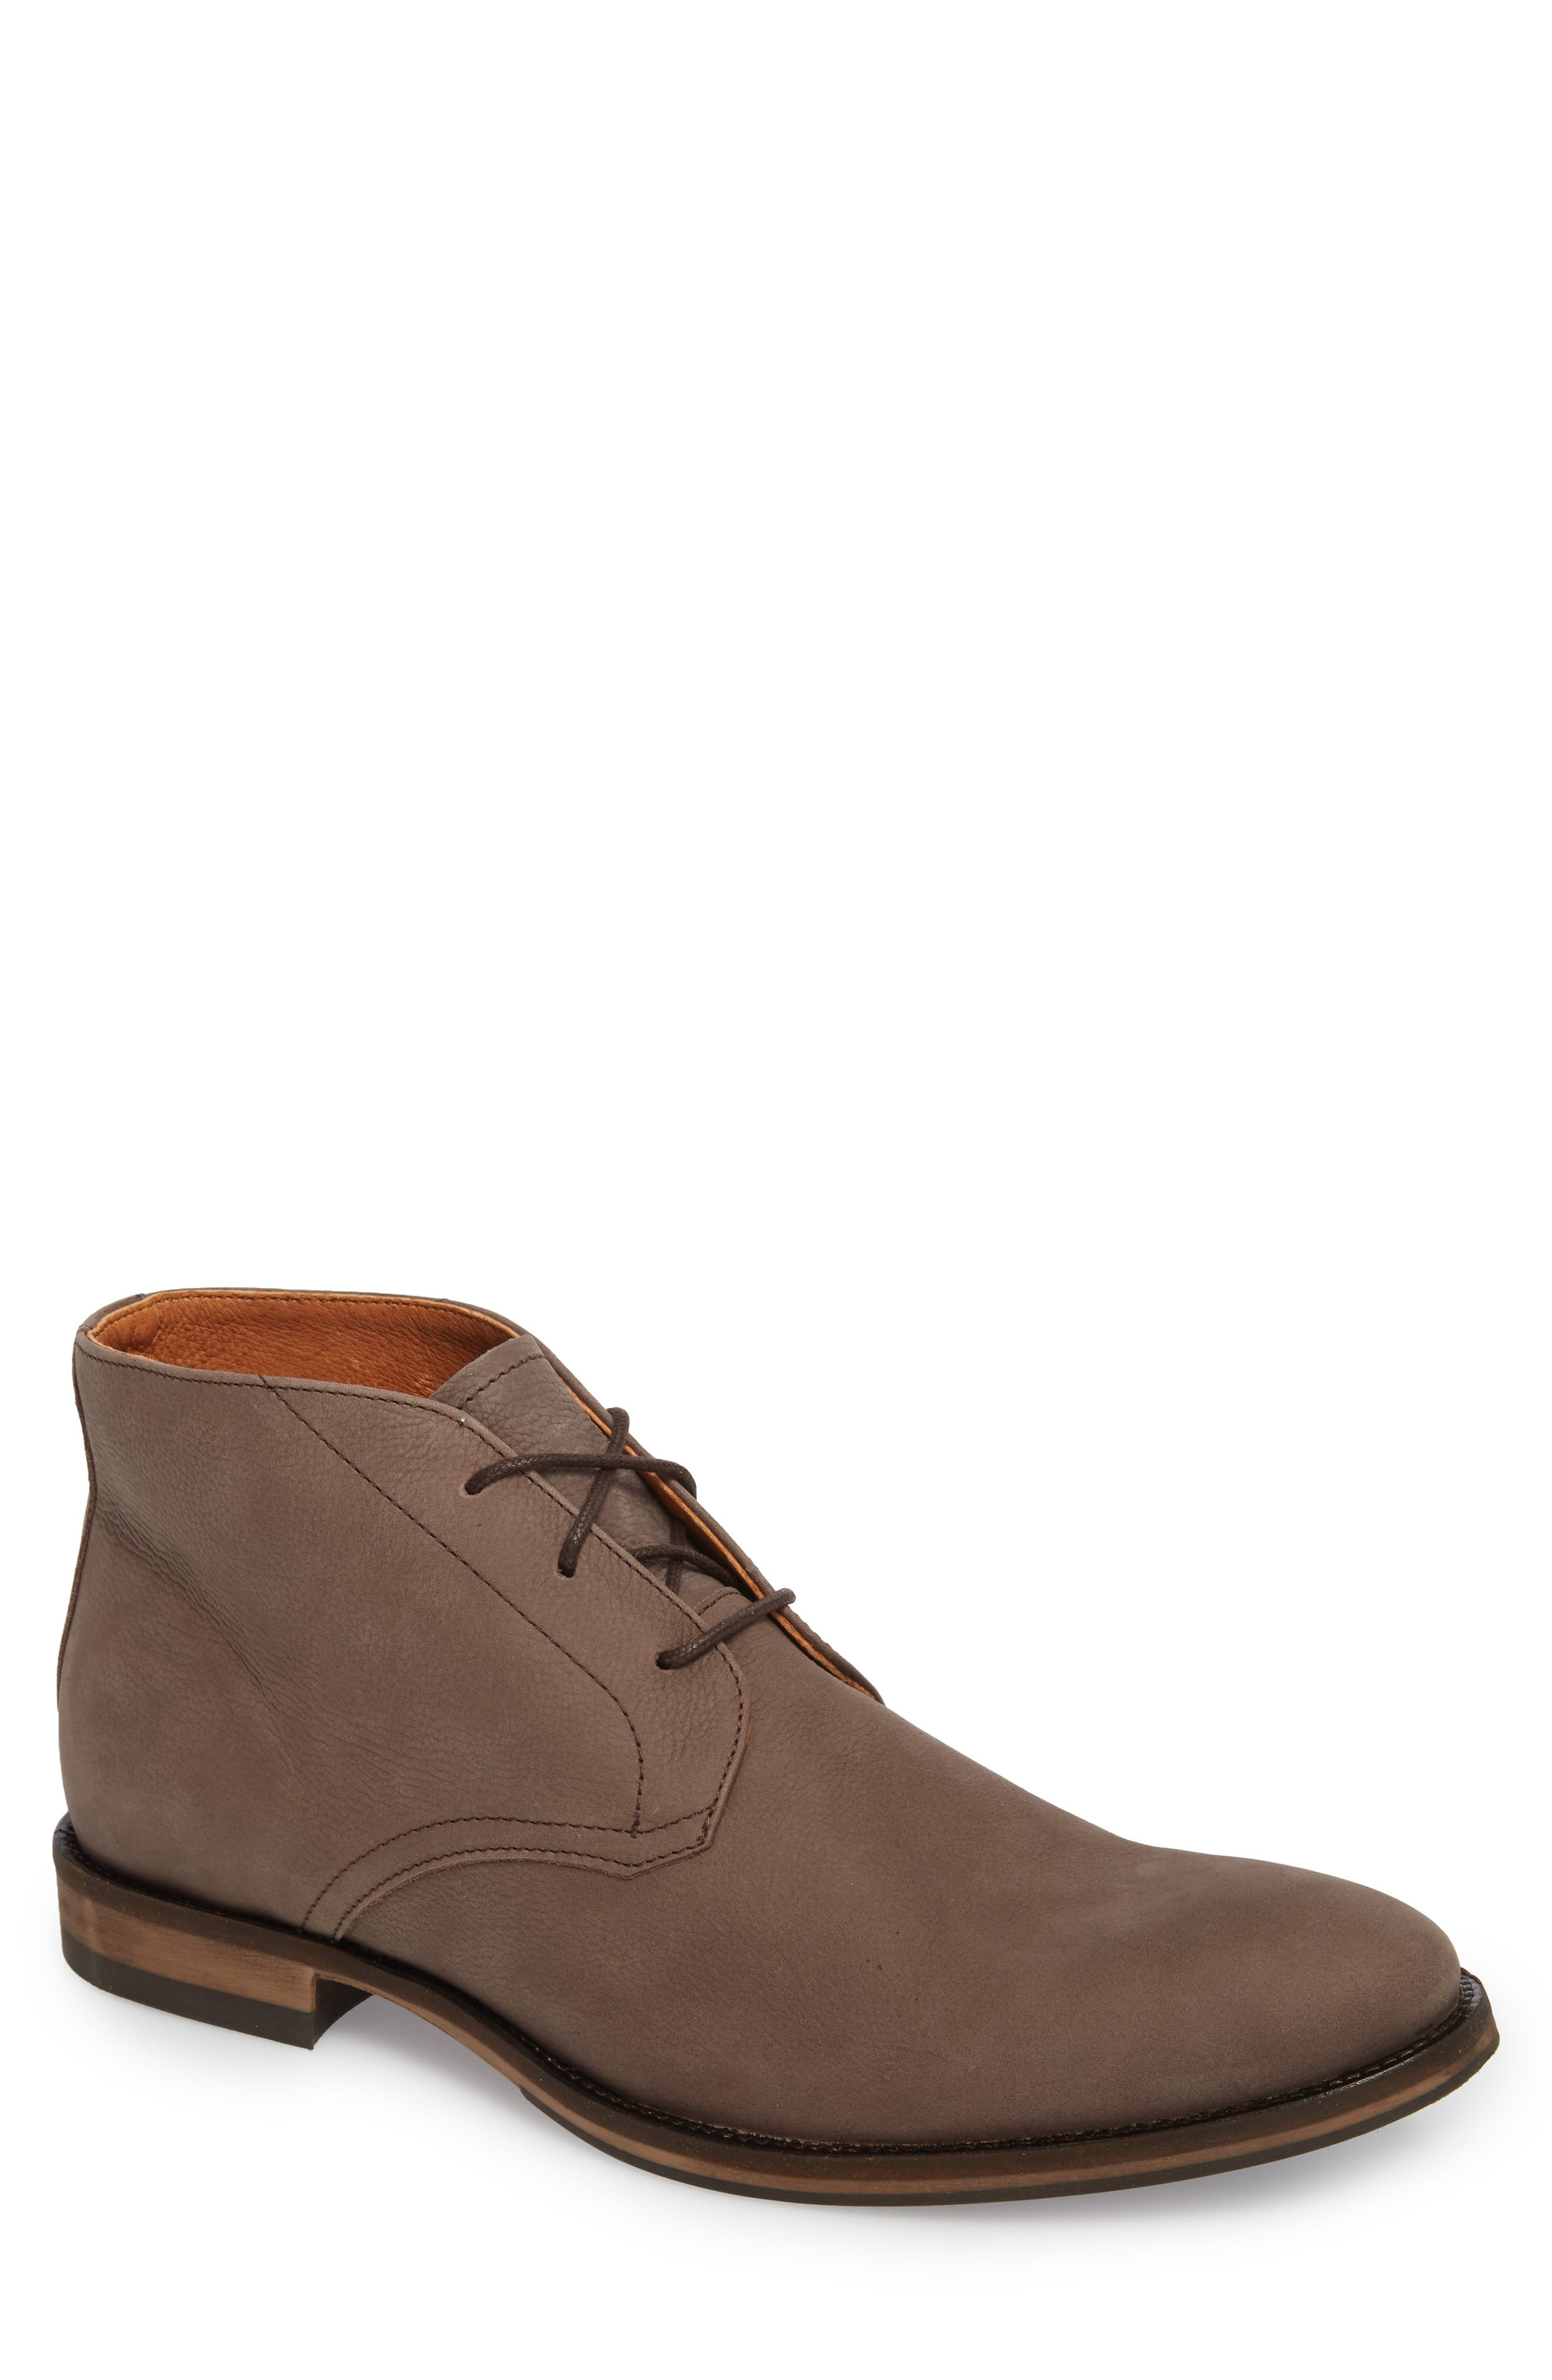 Barber Road Chukka Boot,                         Main,                         color, Tobacco Leather